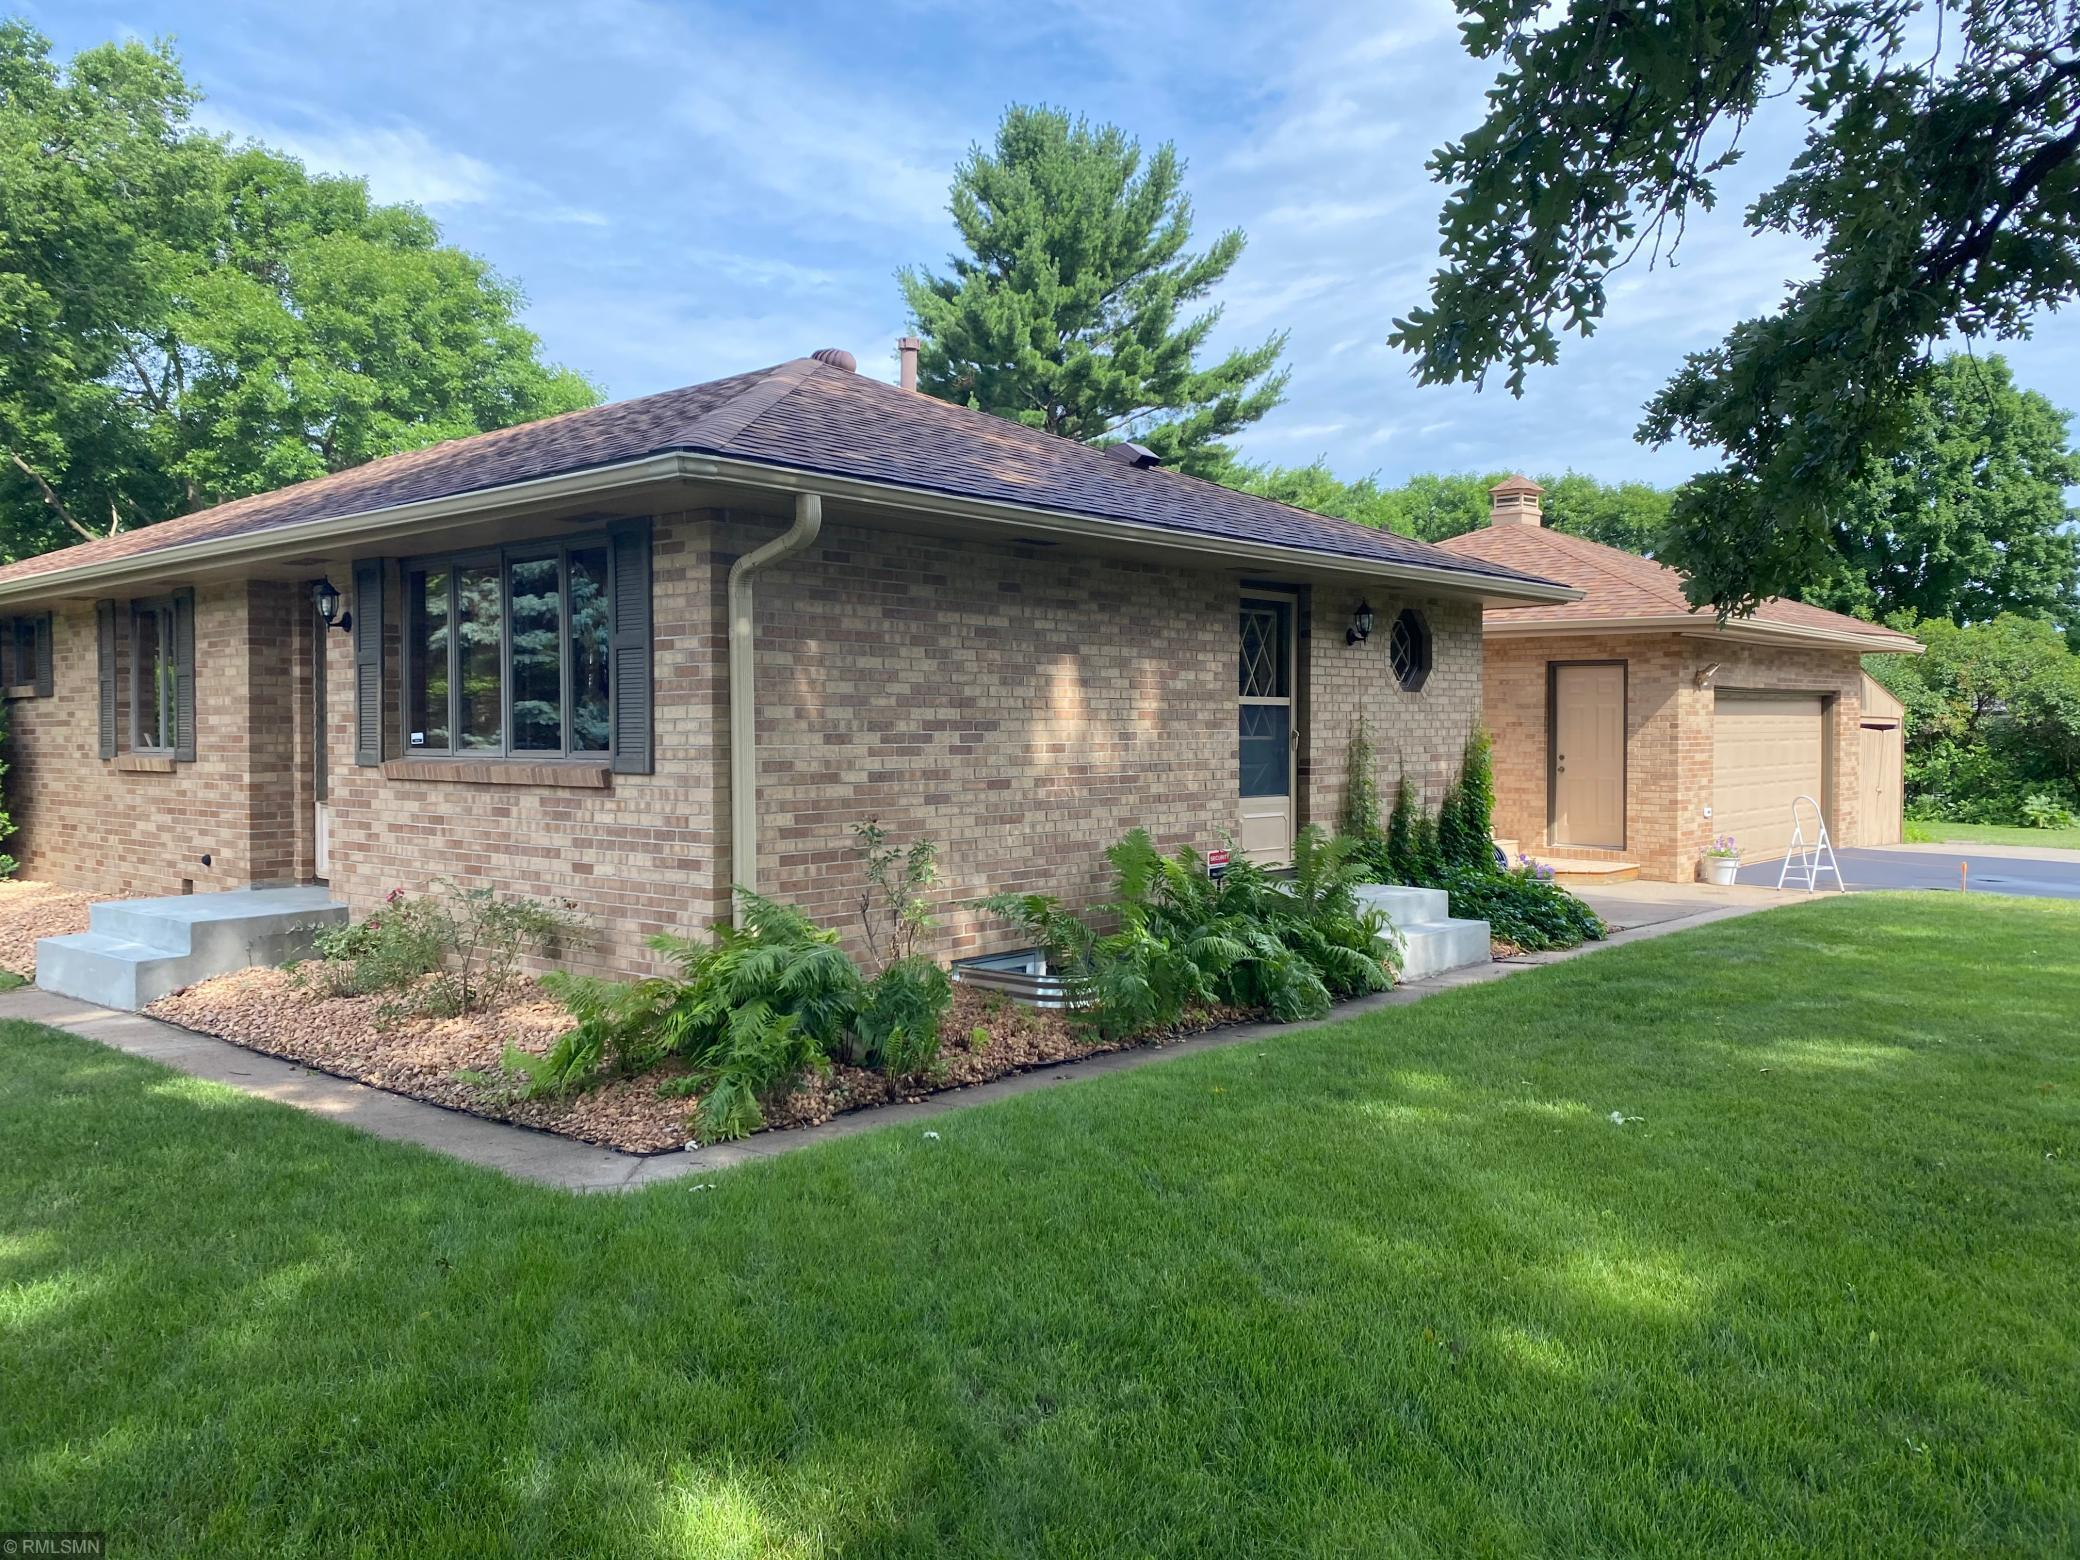 24 E 104th Street Property Photo - Bloomington, MN real estate listing